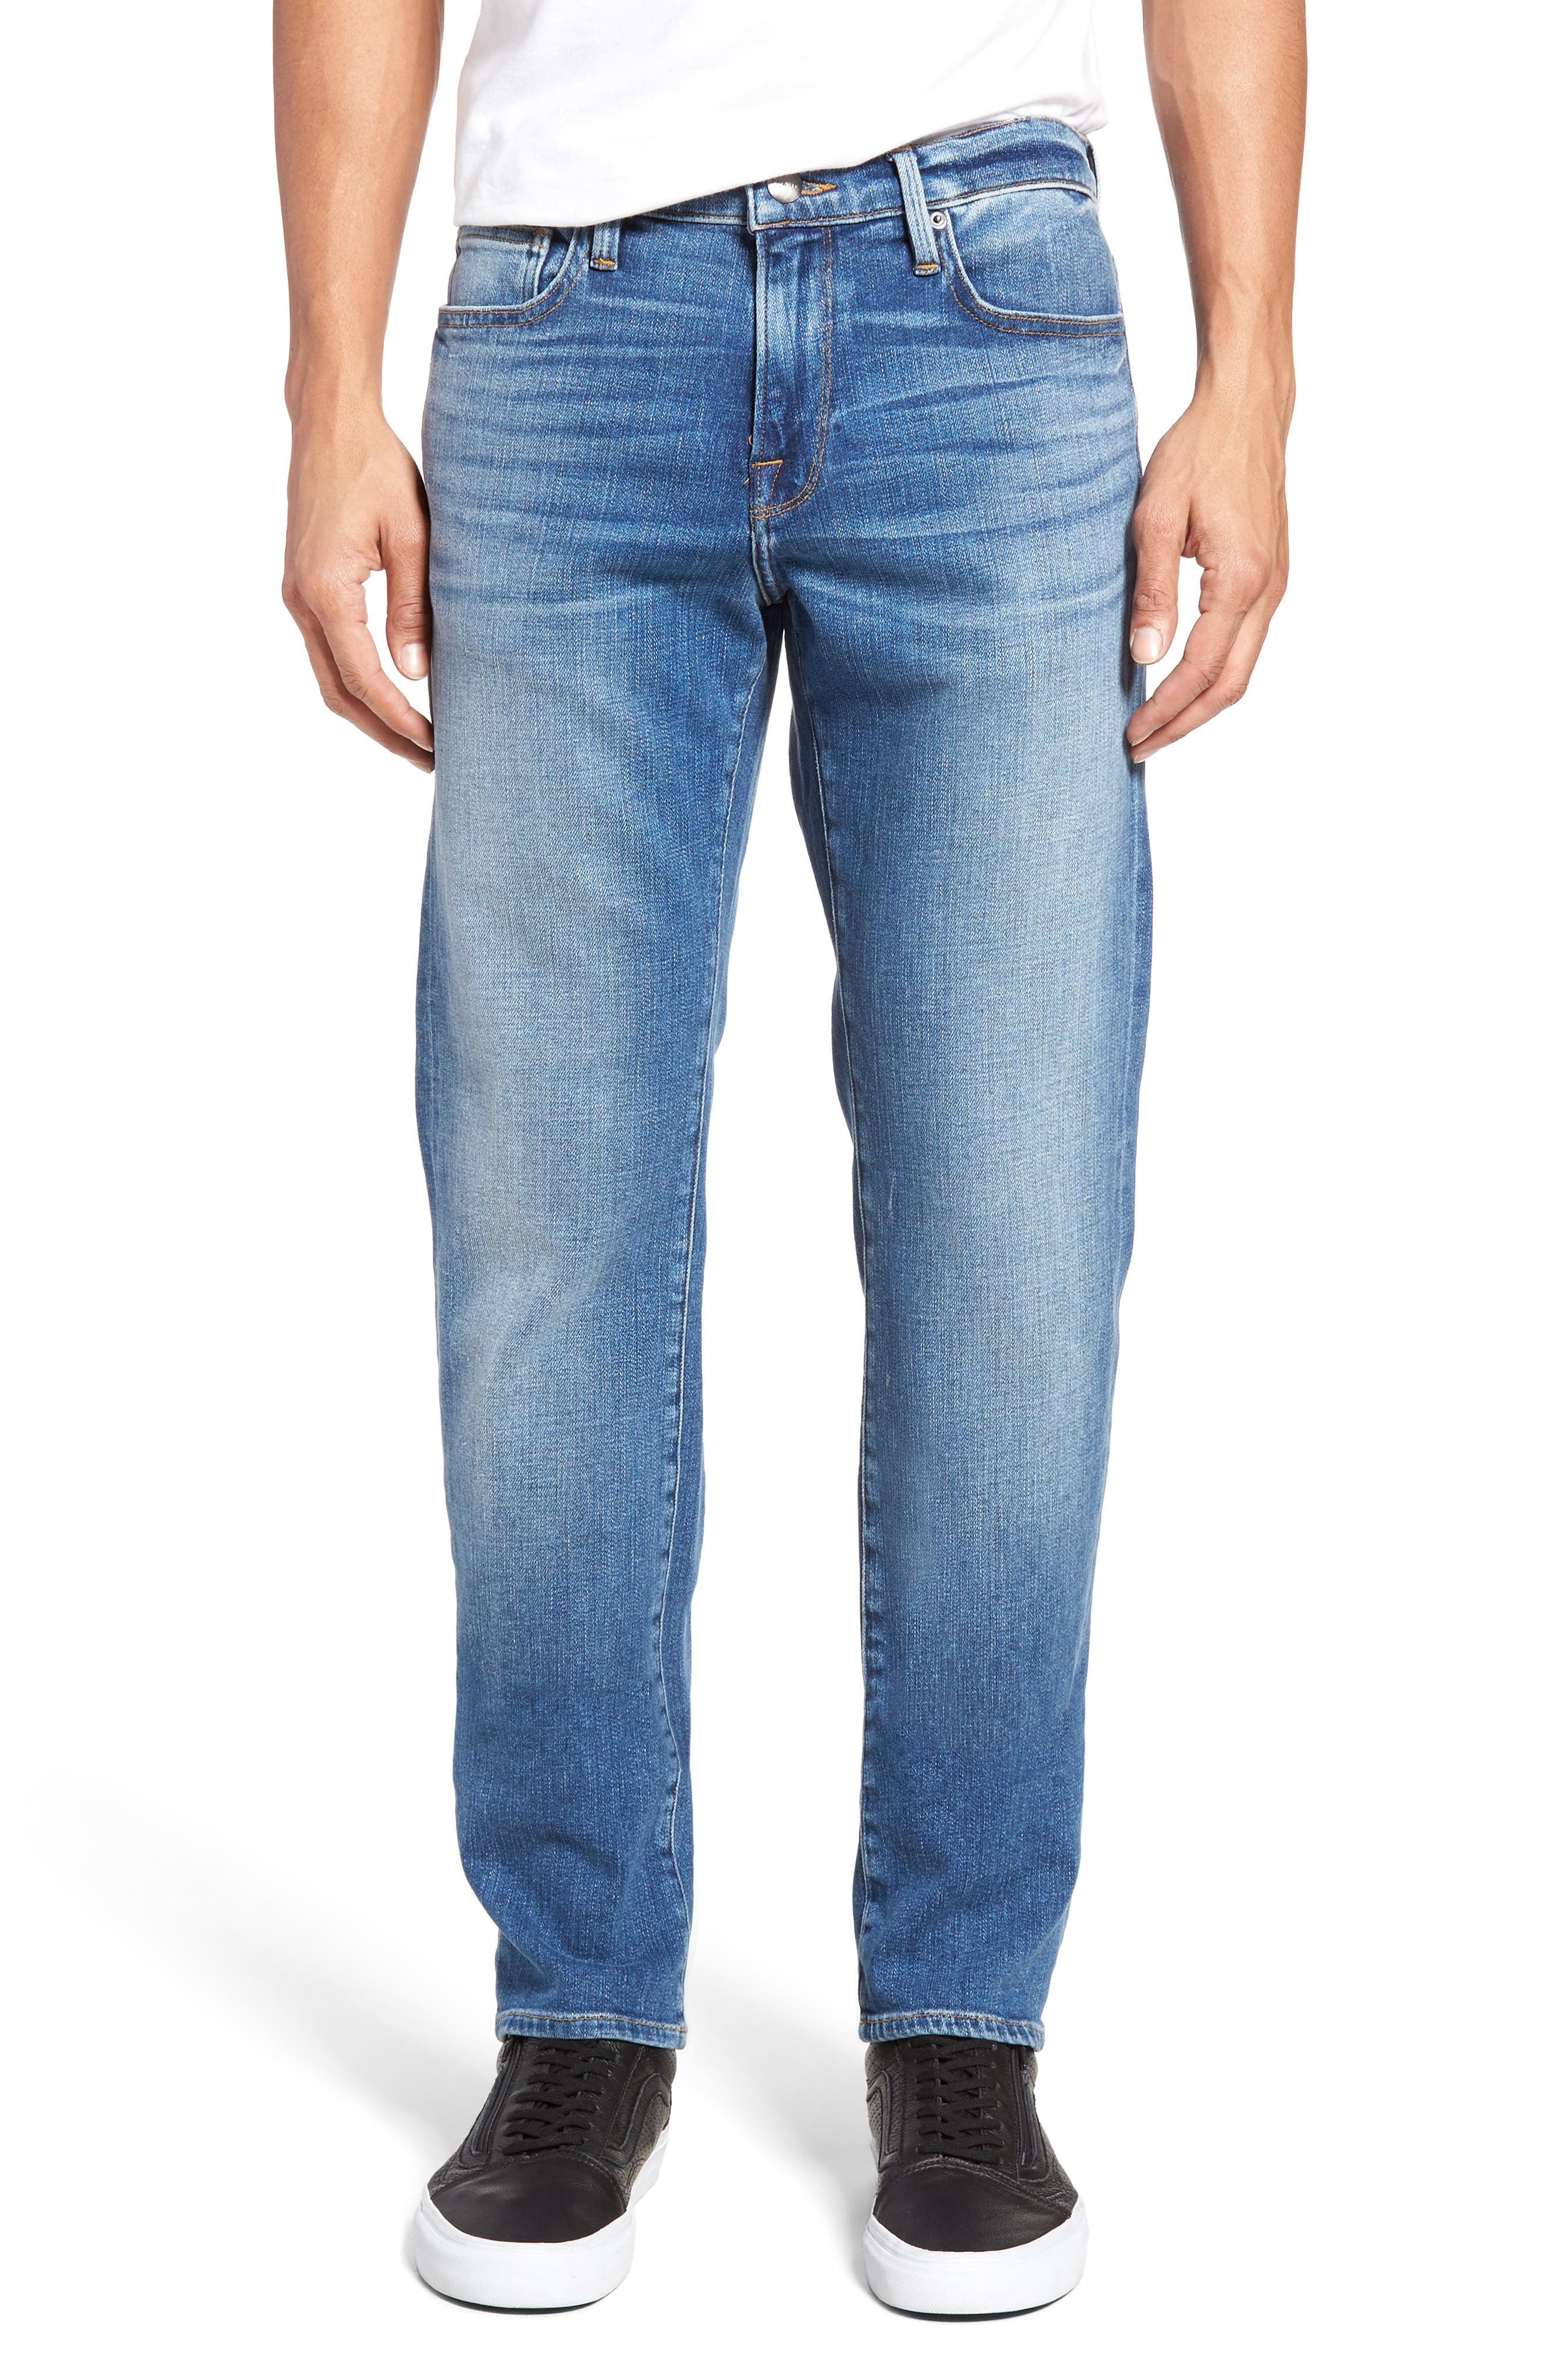 L'Homme Slim Fit Jeans,                         Main,                         color,